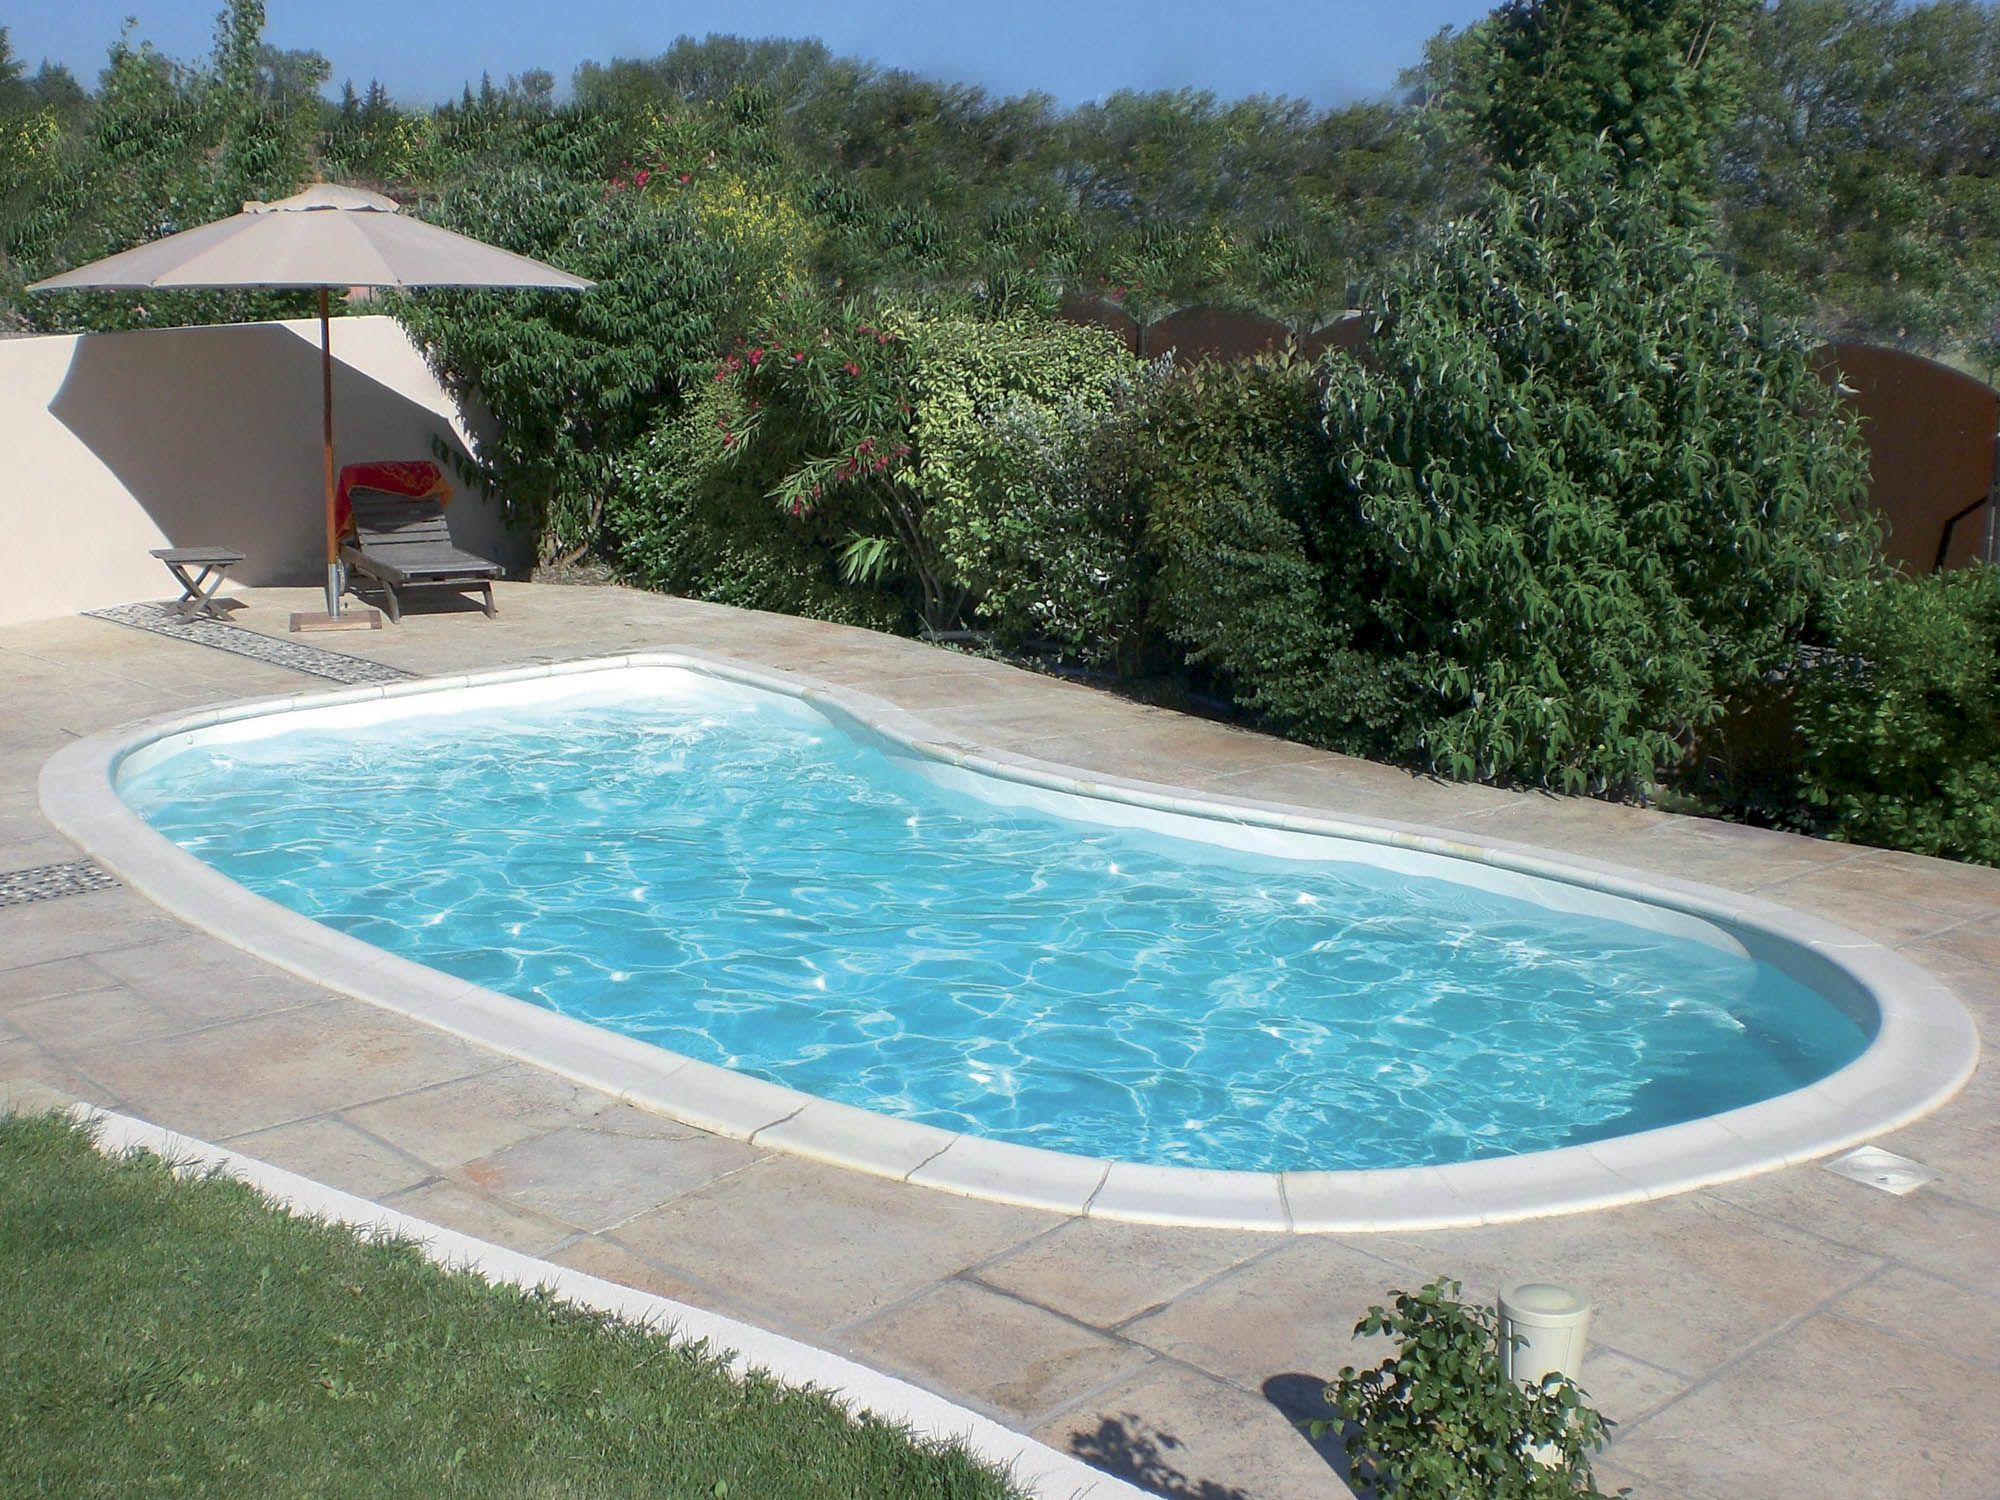 Piscine coque polyester ovation piscine haricot for Budget piscine coque